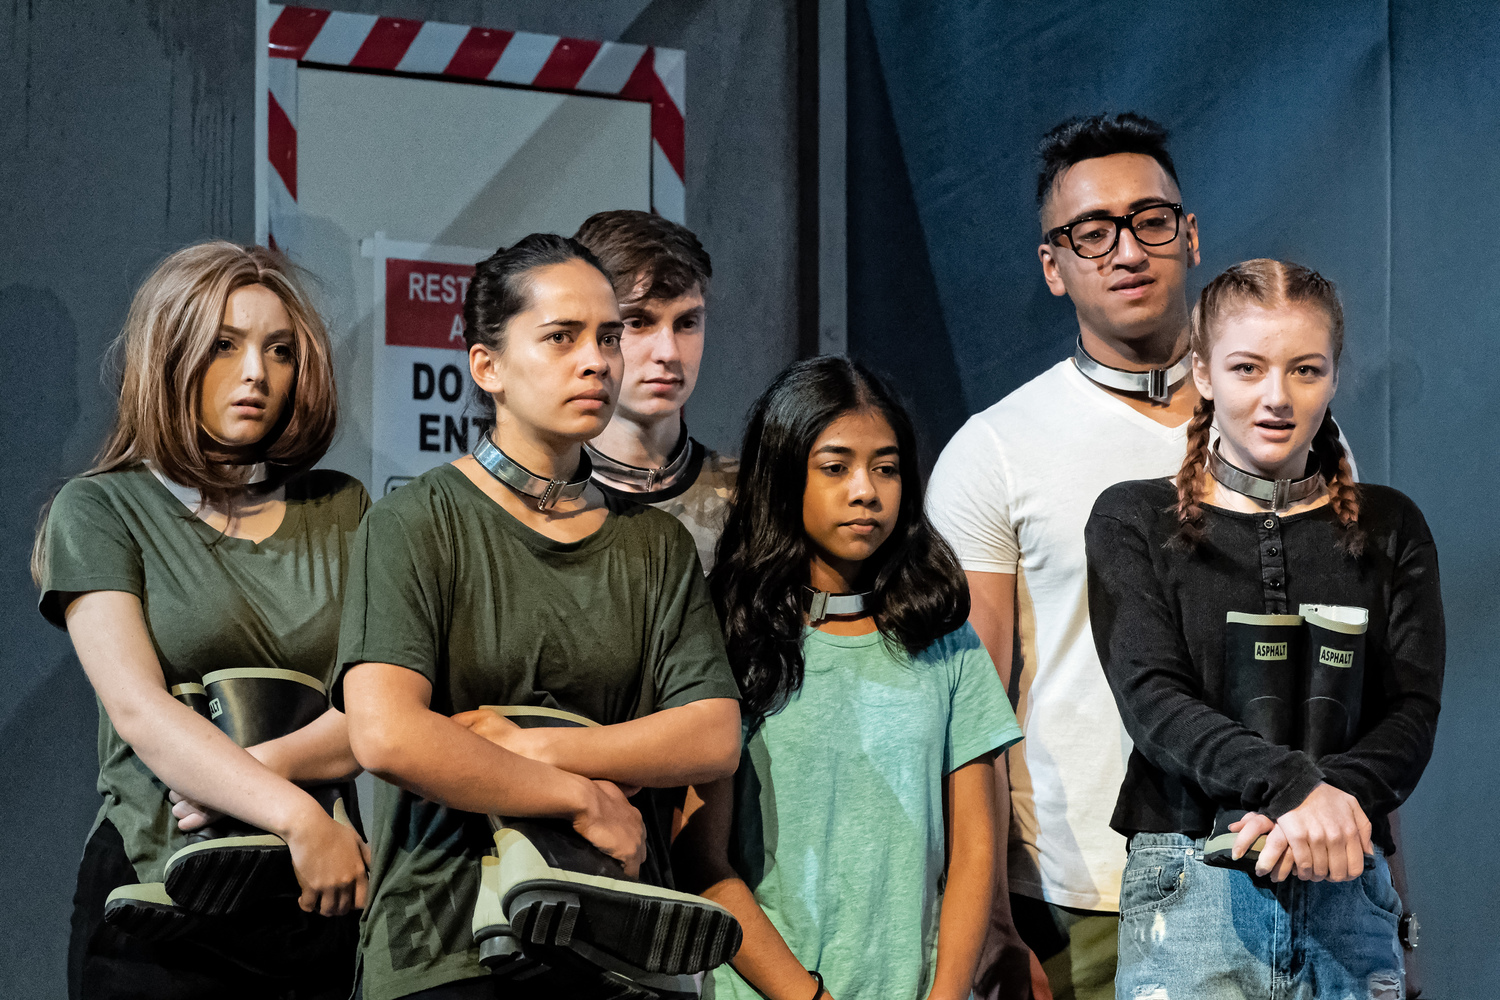 BWW Review: YOU FIRST at ASB Waterfront Auckland